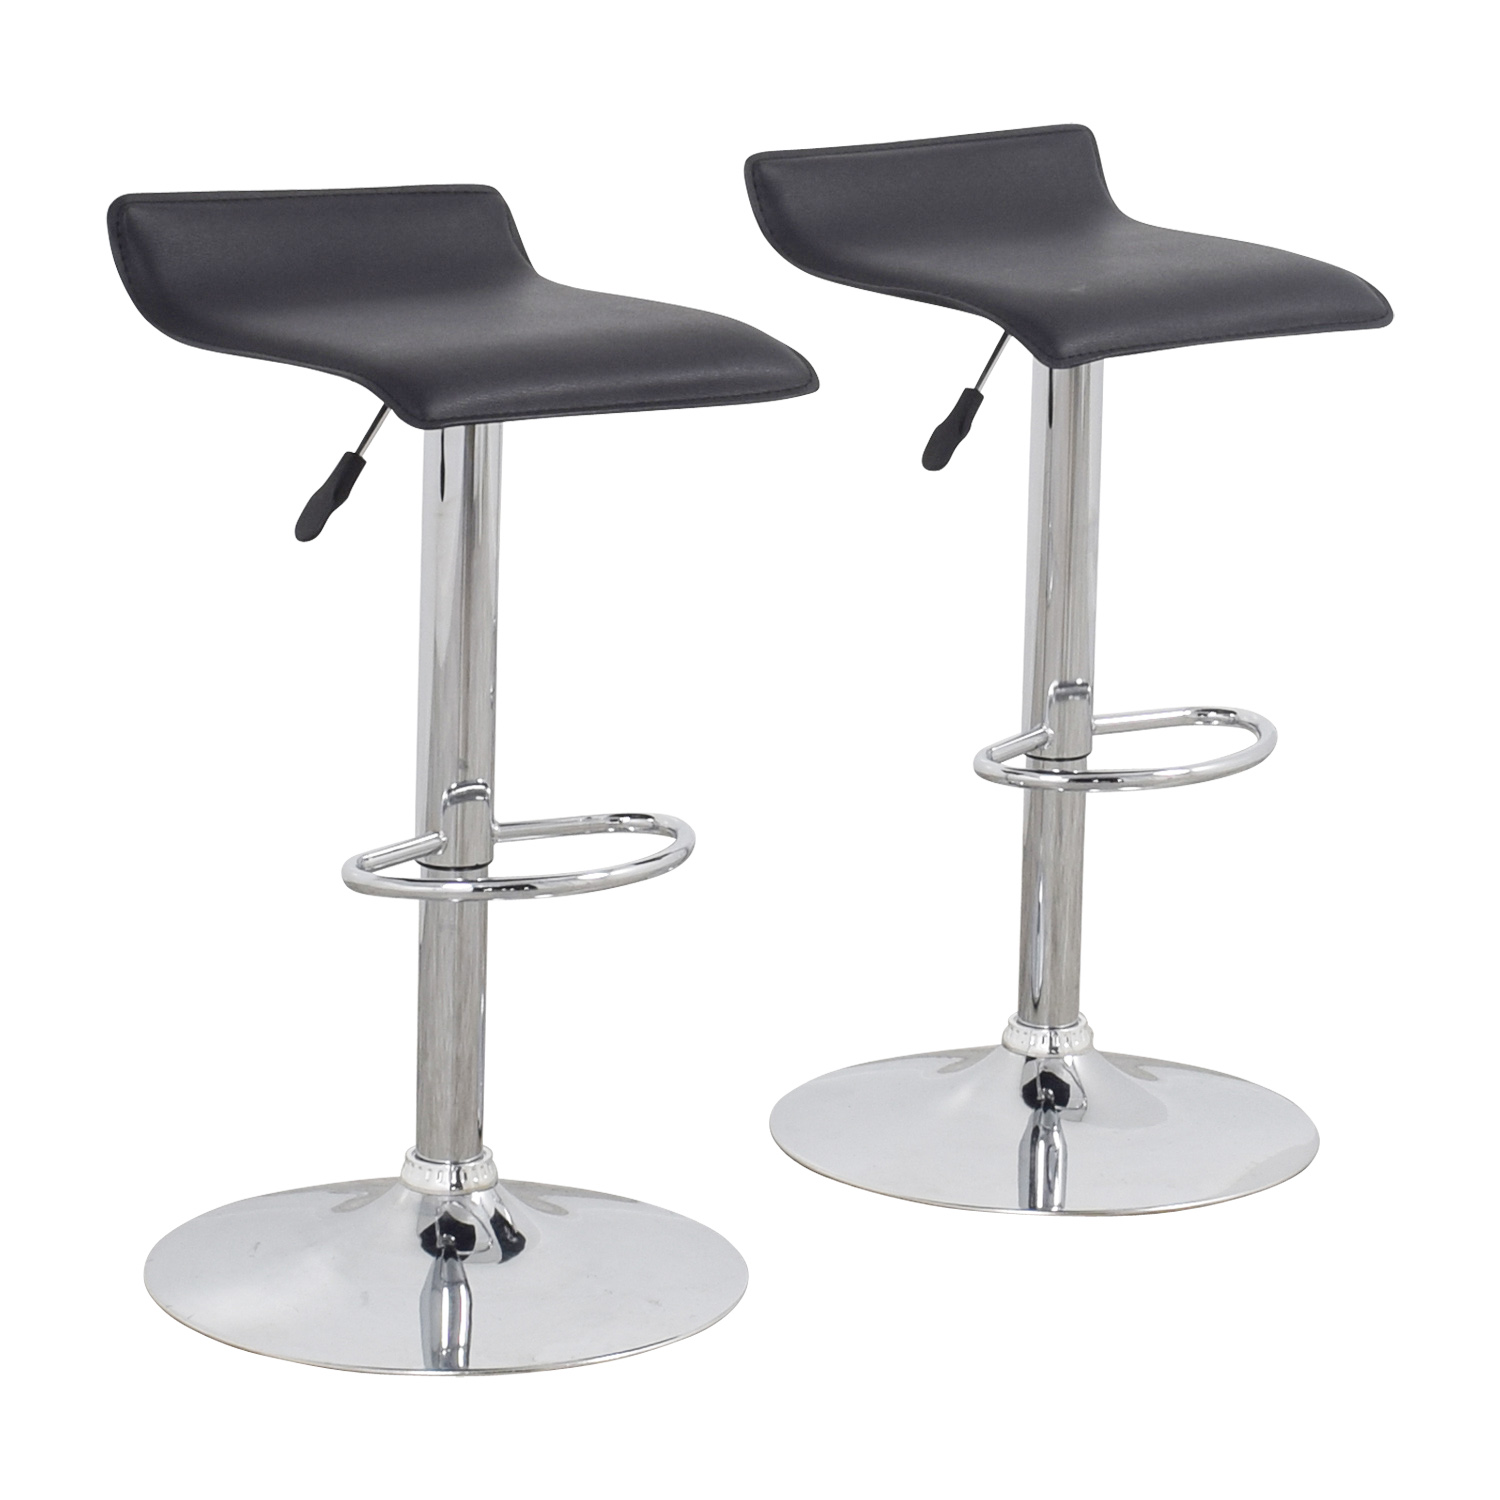 87 Off Black Bar Stools Chairs